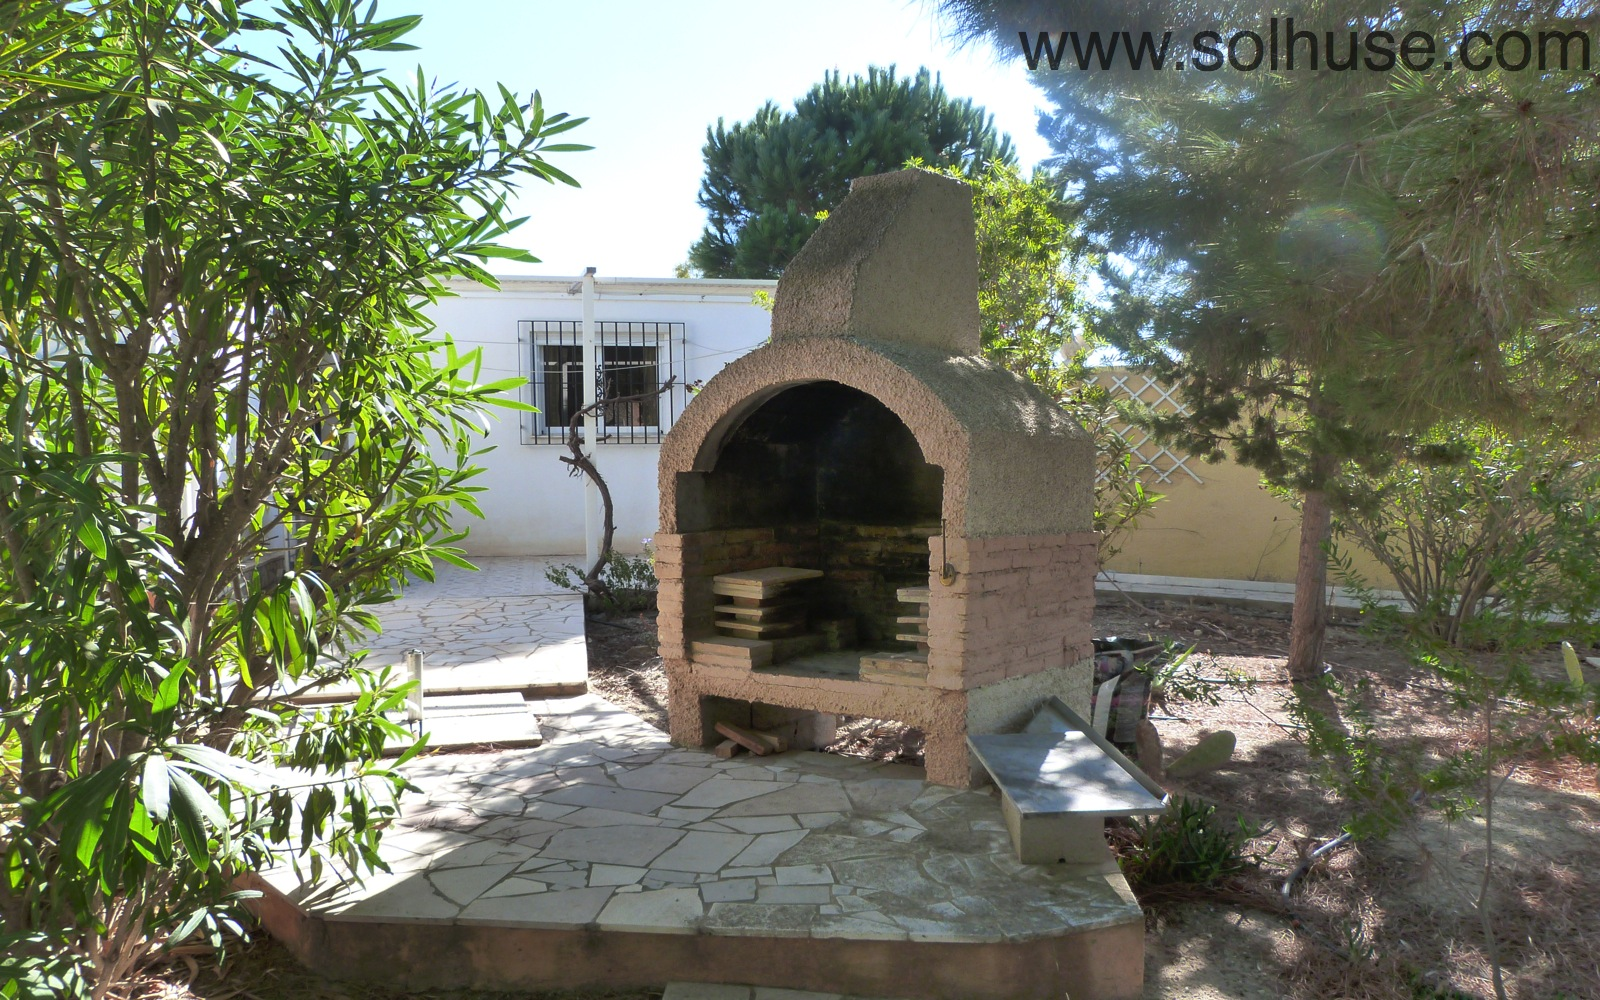 BEAUTIFUL LOCATION FOR 2 BED FINCA WITH ROOM TO EXTEND